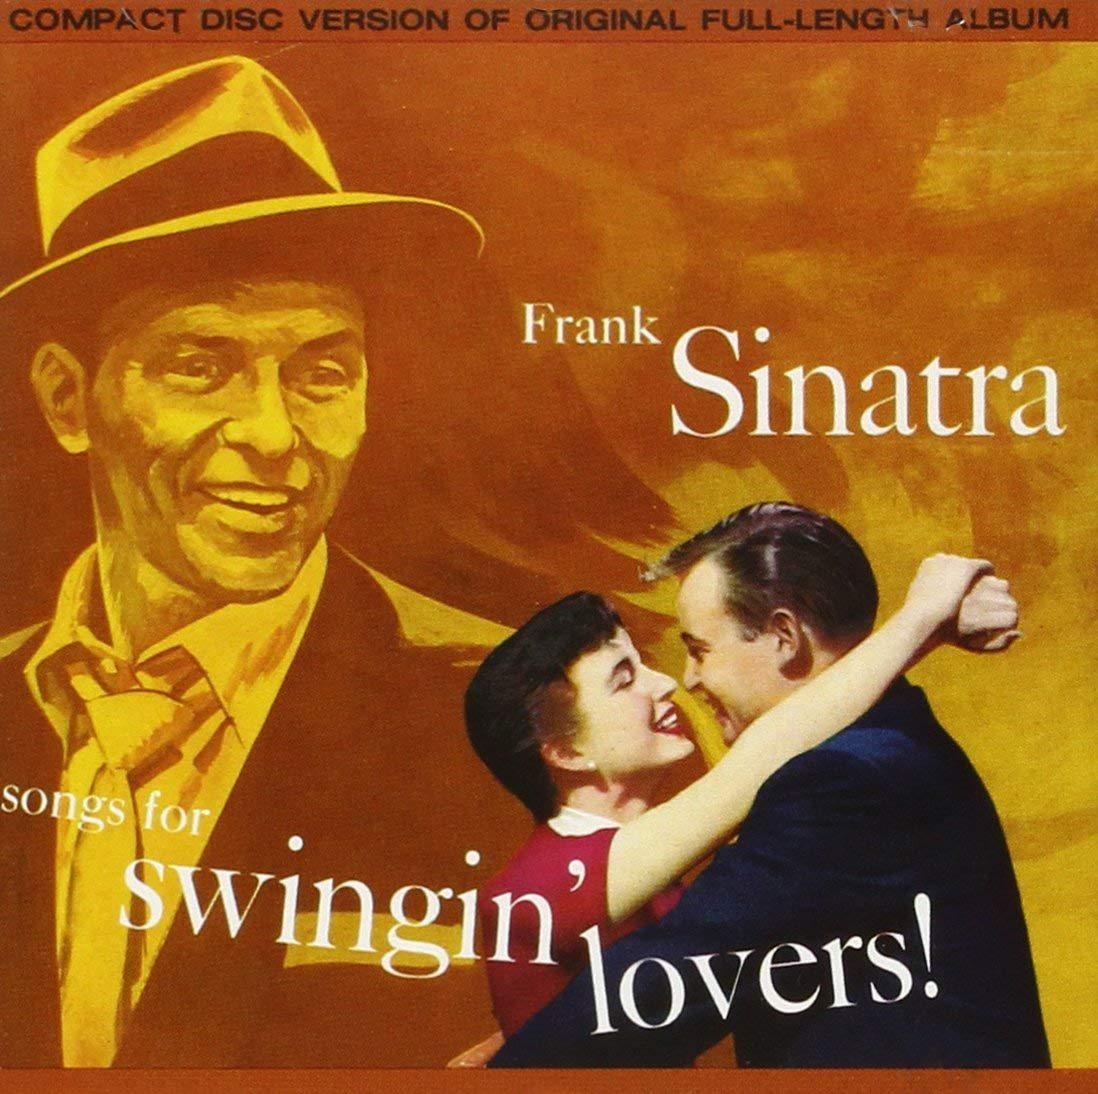 Frank Sinatra – Songs for Swingin' Lovers